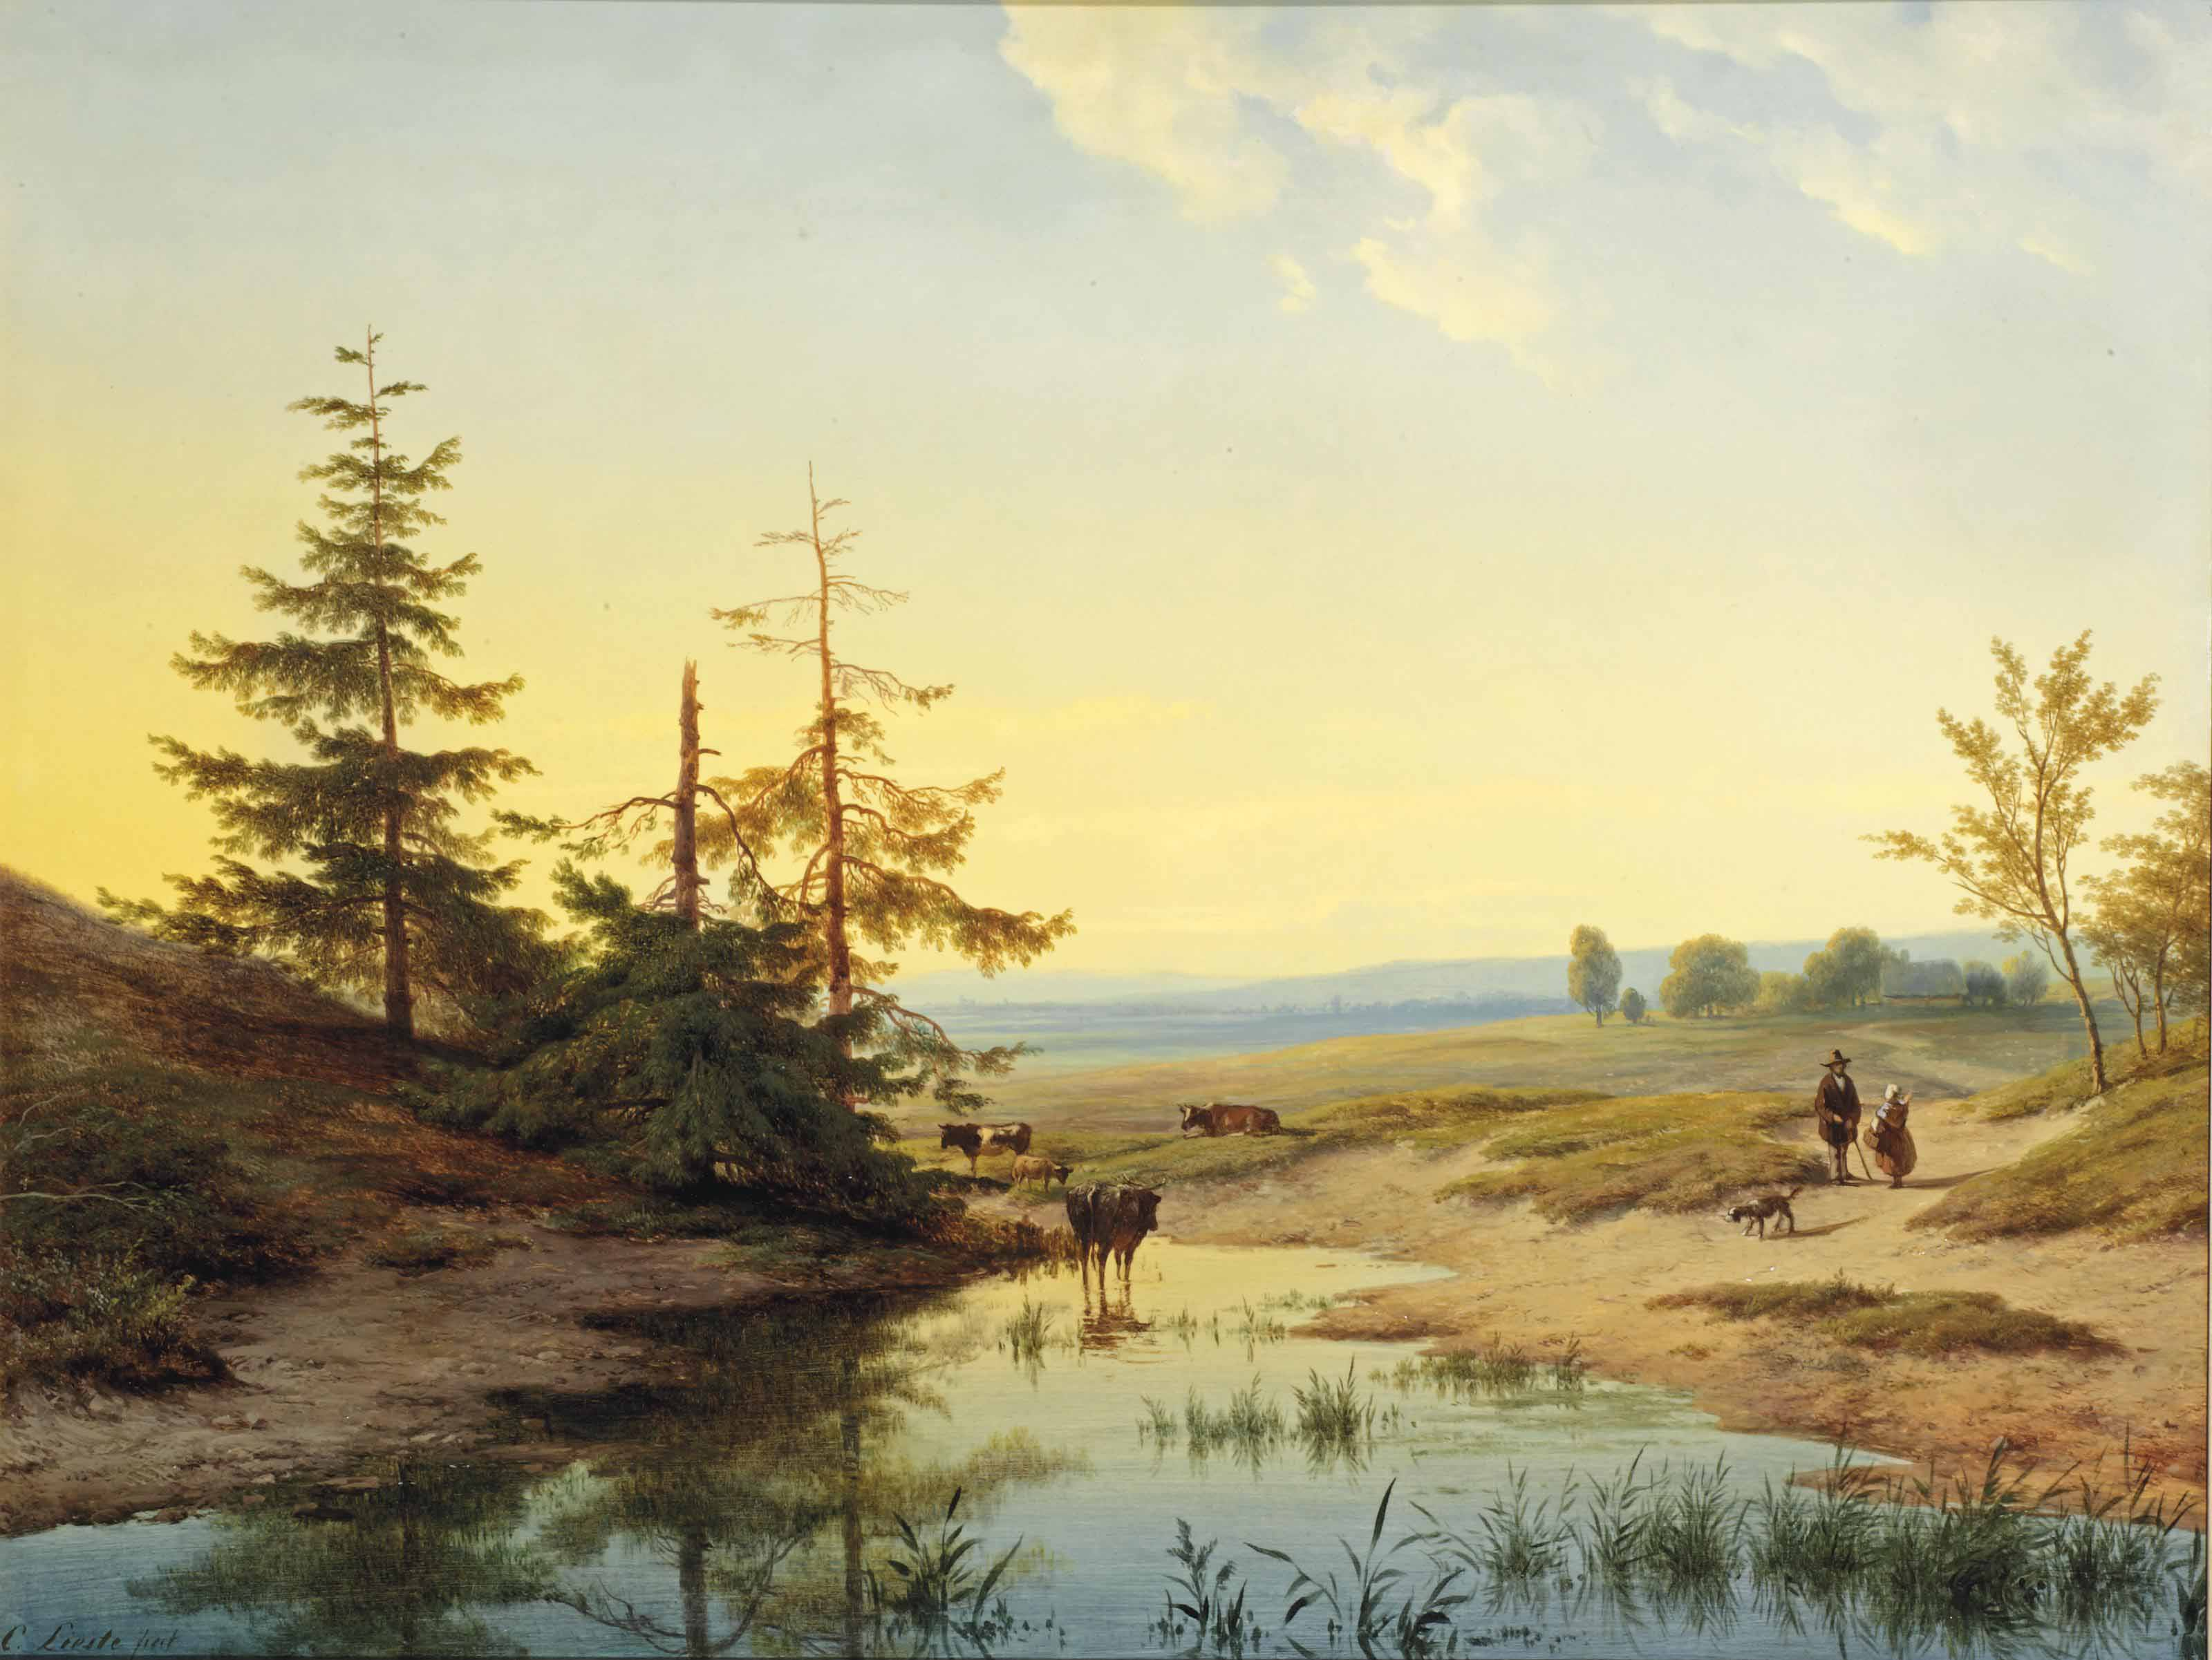 A moorland with figures and cattle by a pond